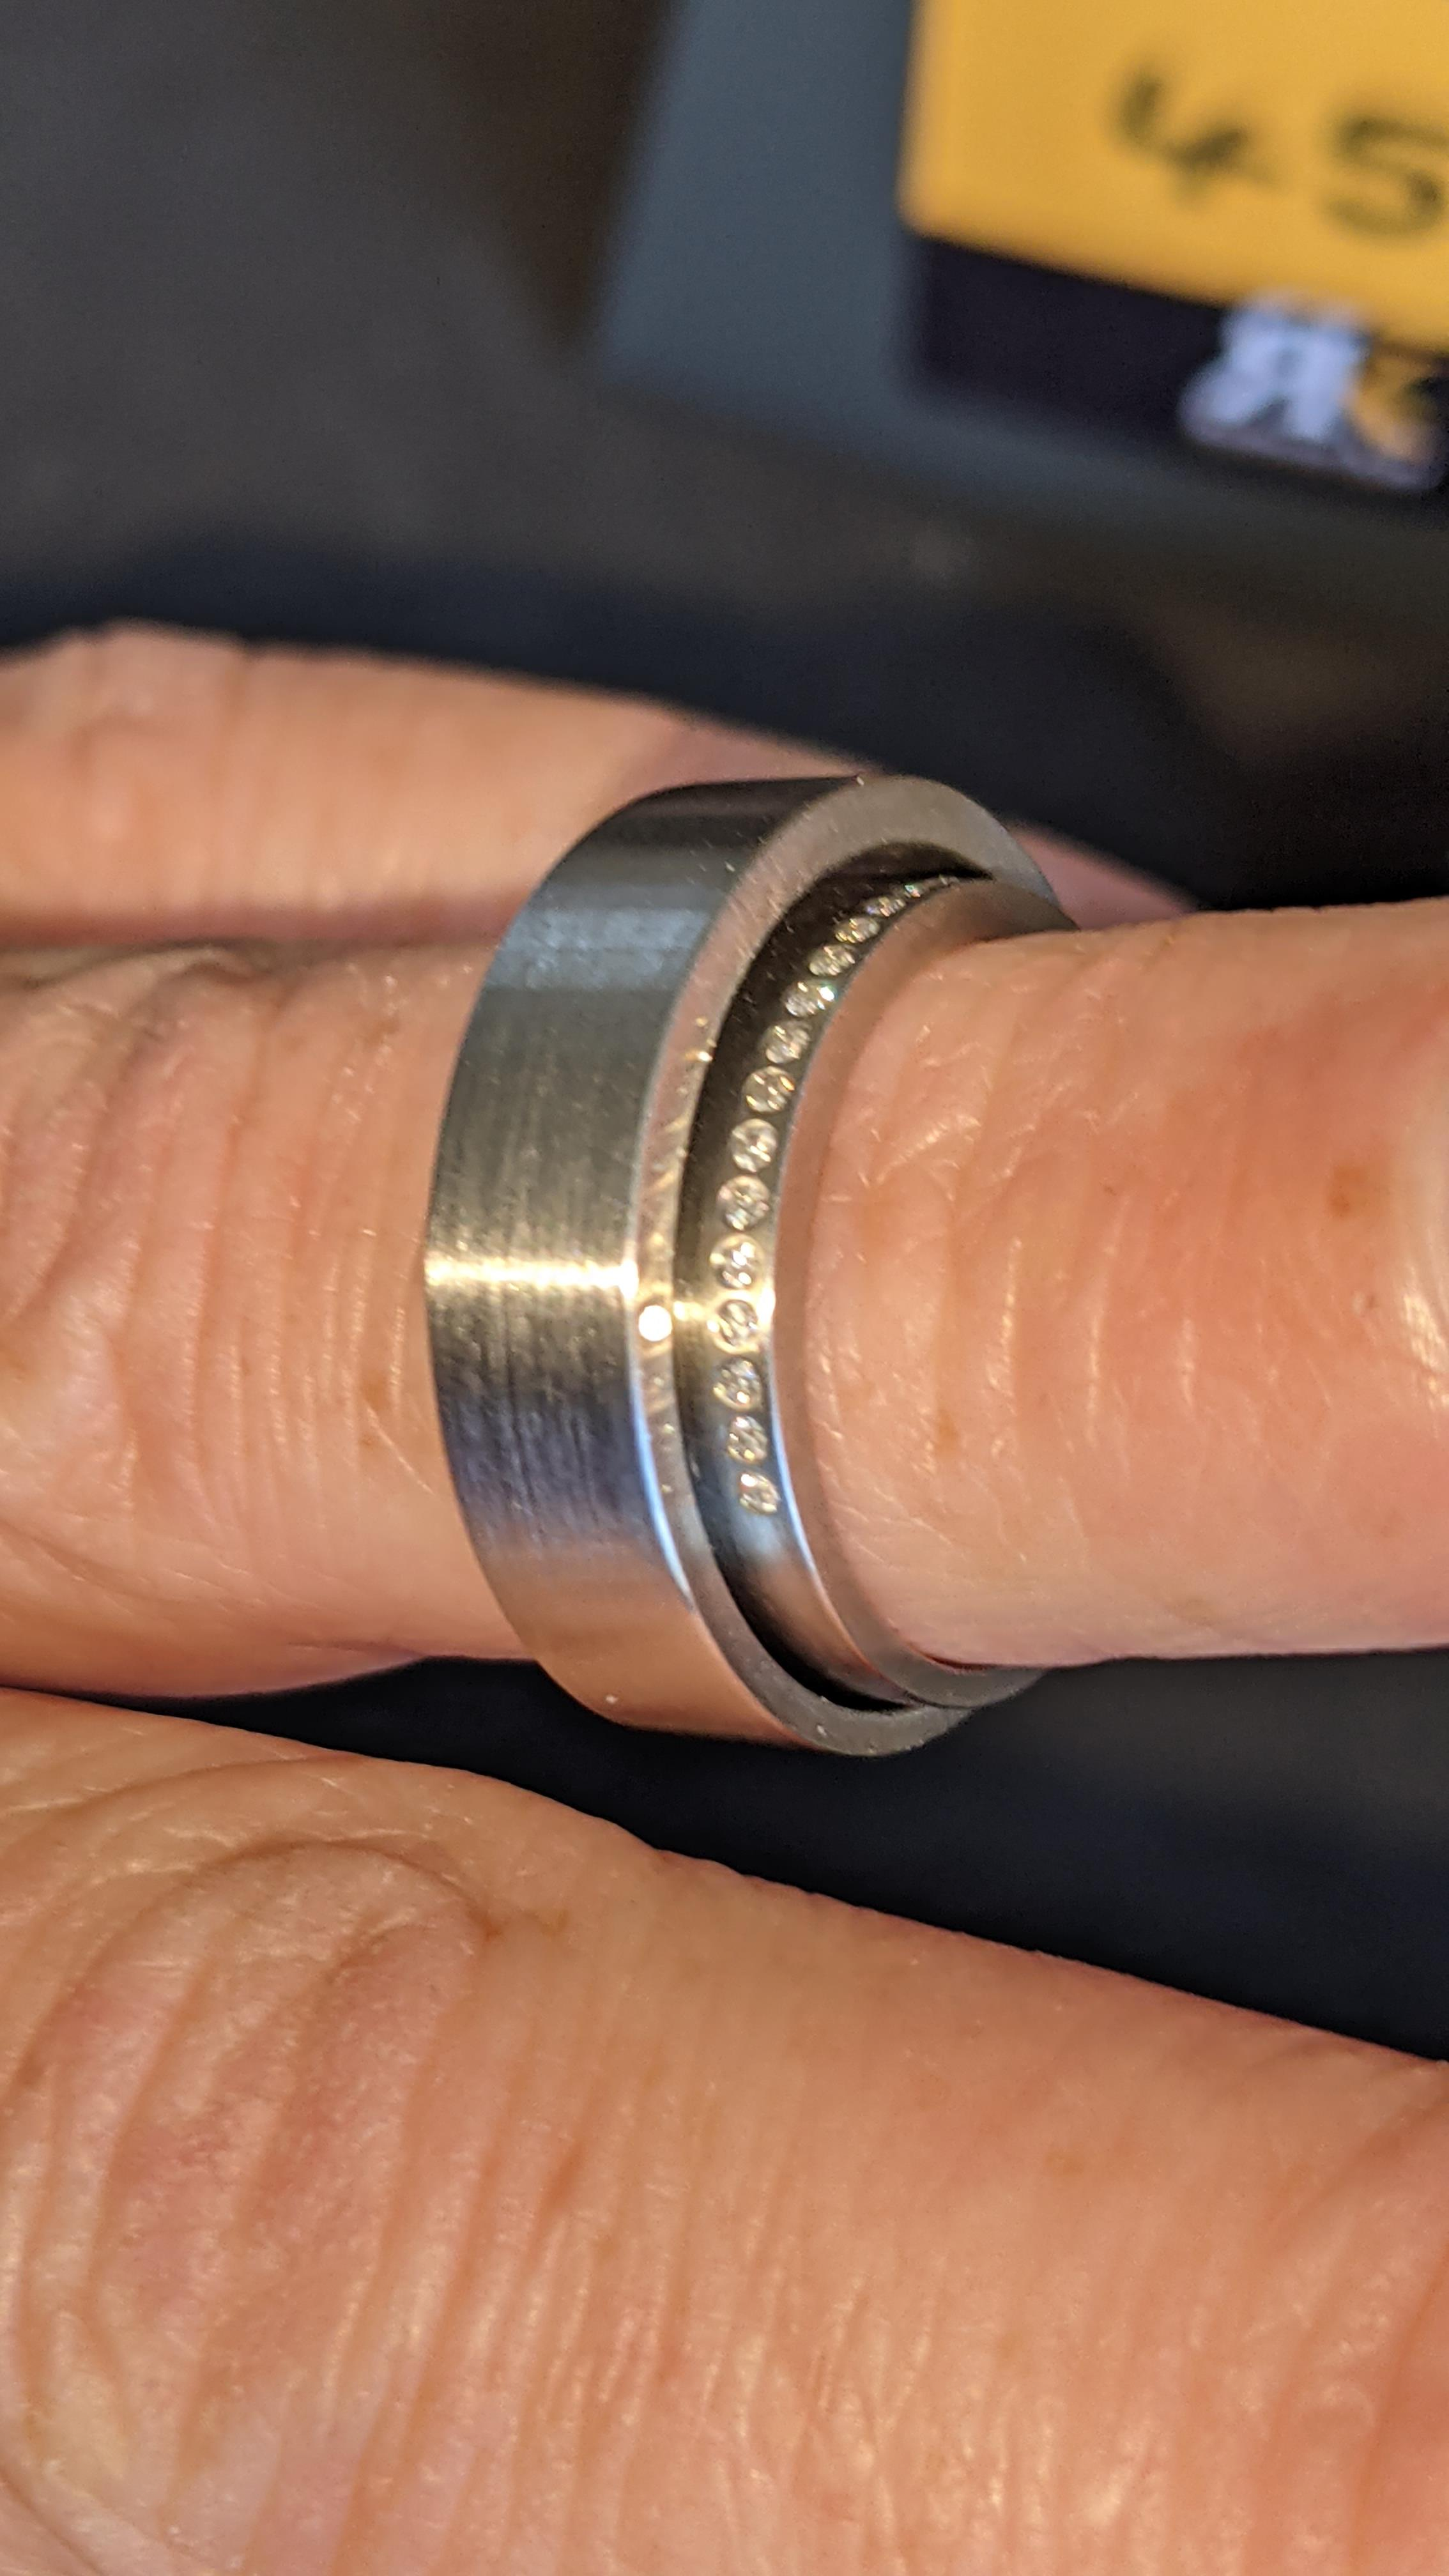 Stainless steel & diamond unusually shaped ring with inner & outer circles joined on one side, RRP £ - Image 9 of 11